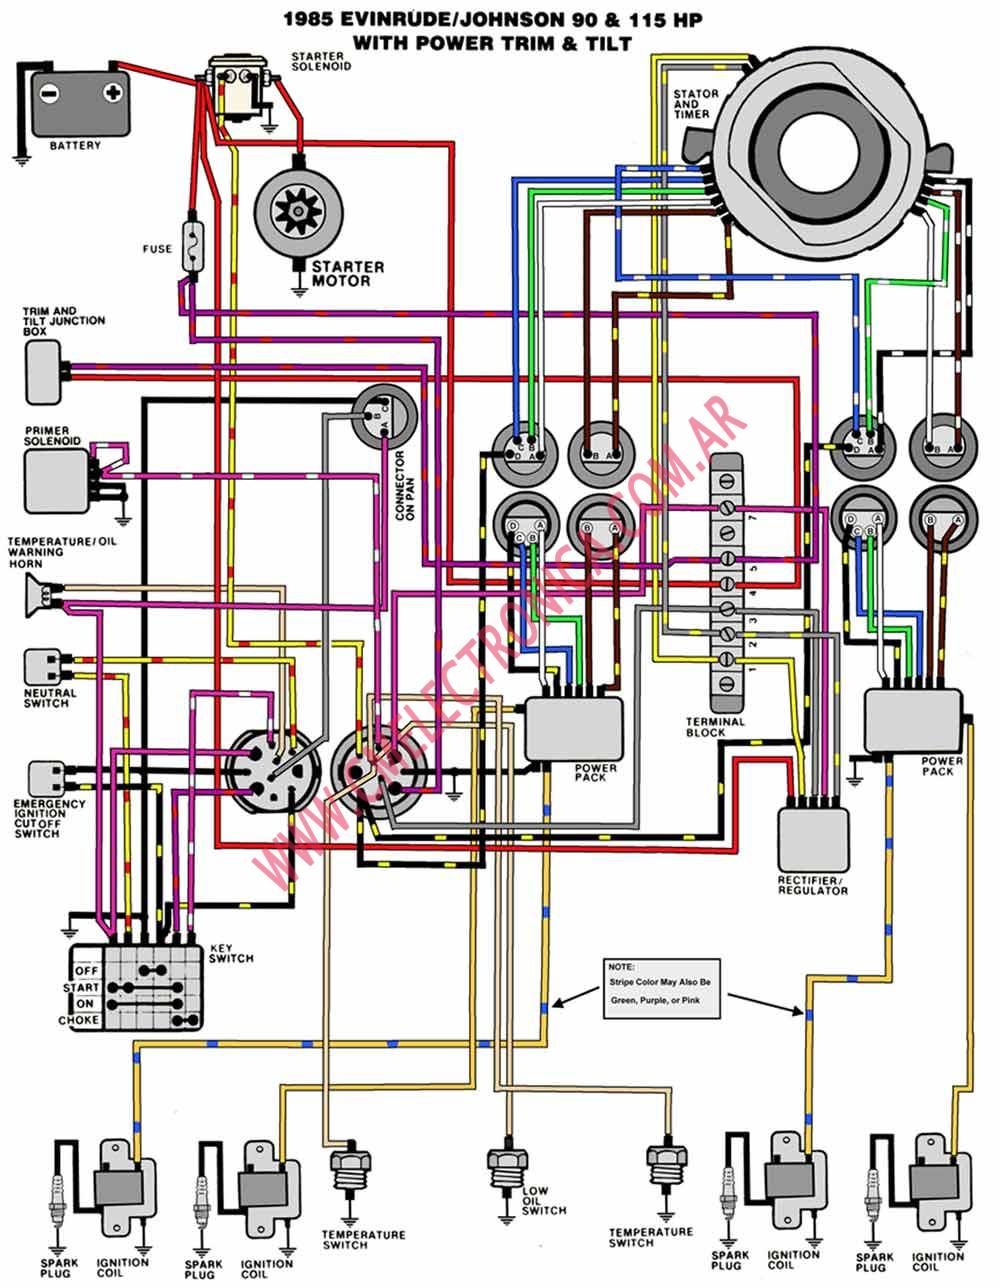 evinrude_johnson 1985_90_115 tnt 2 evinrude wiring diagram efcaviation com 3 wire tilt trim wiring diagram at reclaimingppi.co